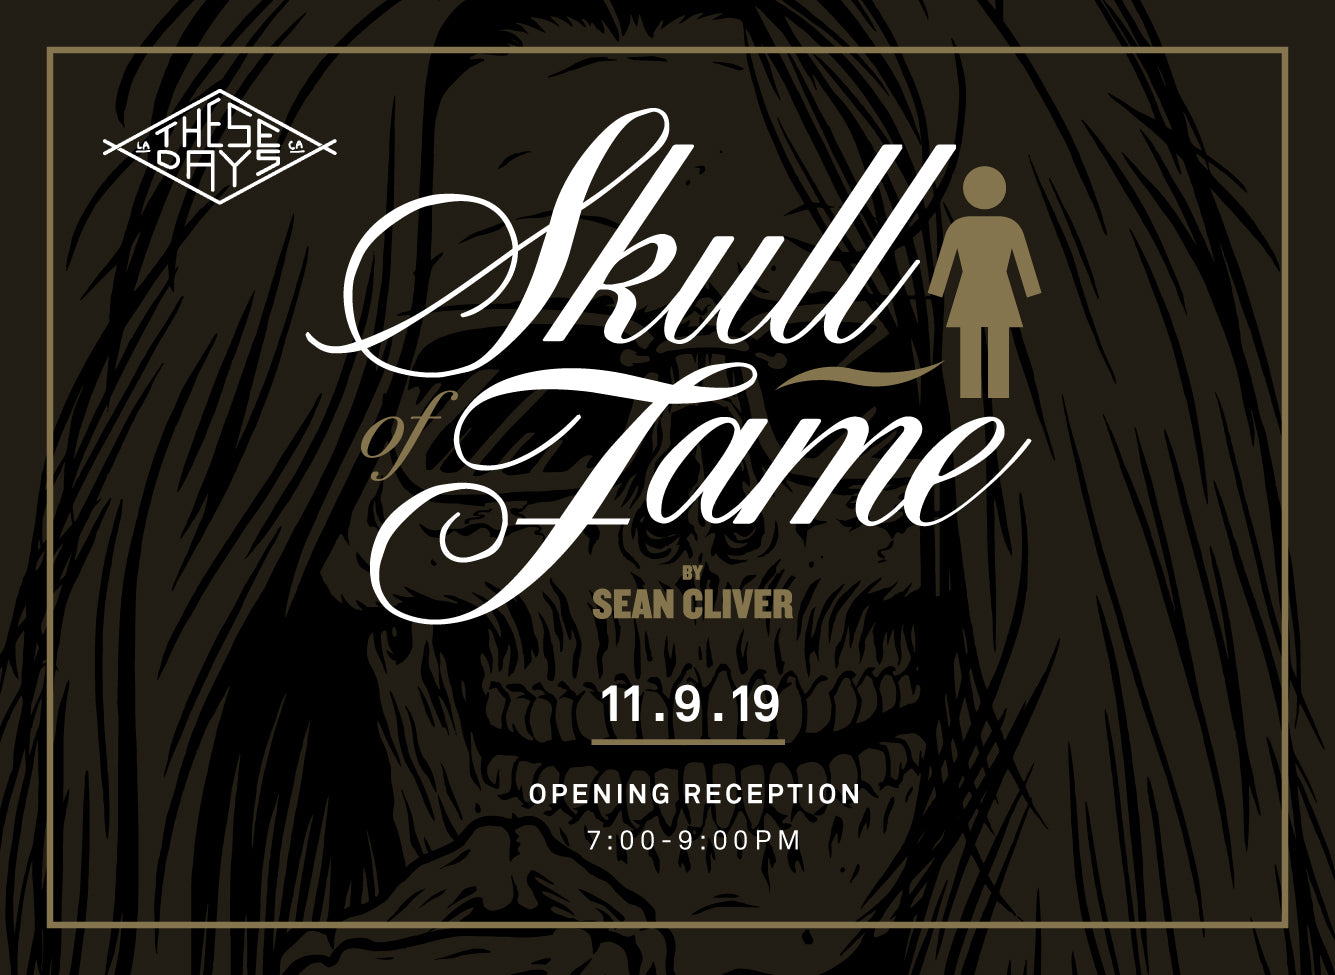 SKULL OF FAME | Sean Cliver for Girl Skateboards